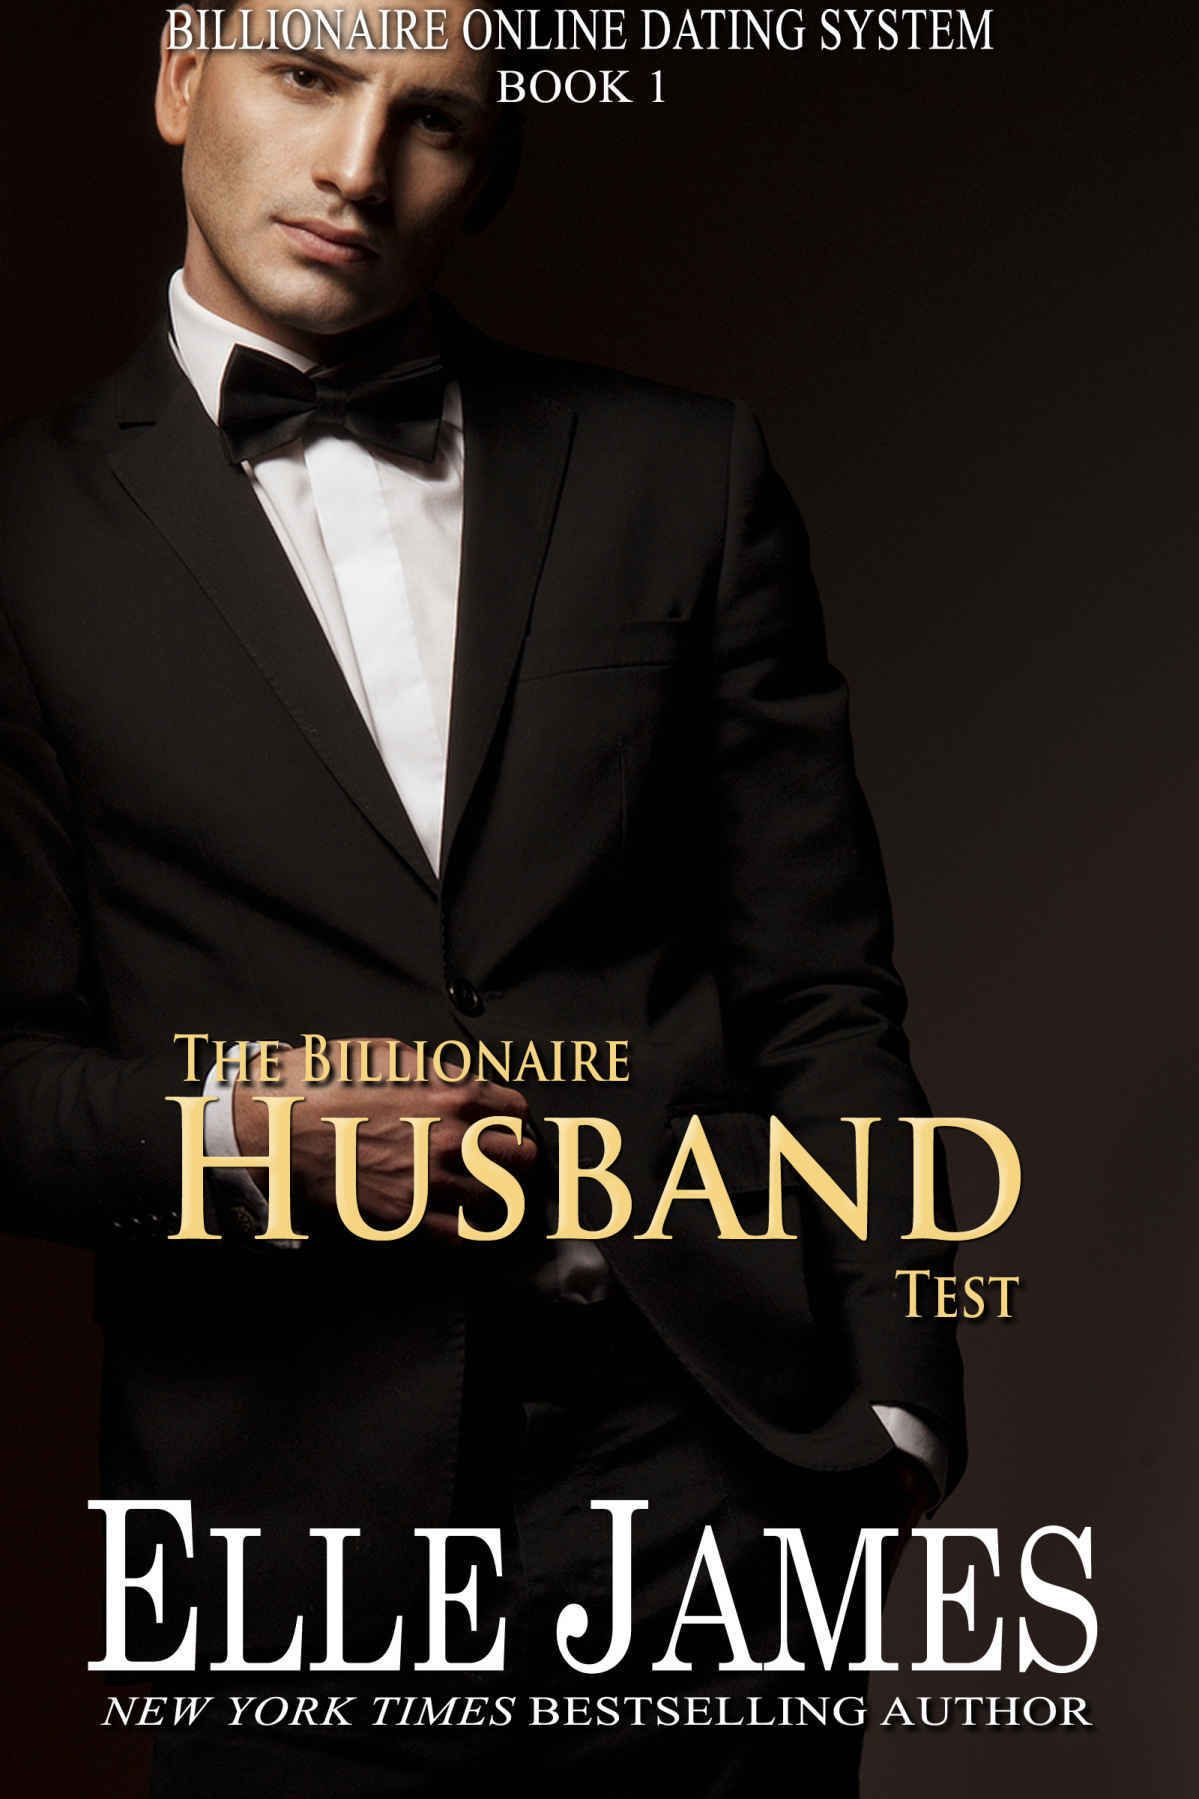 Husband online dating